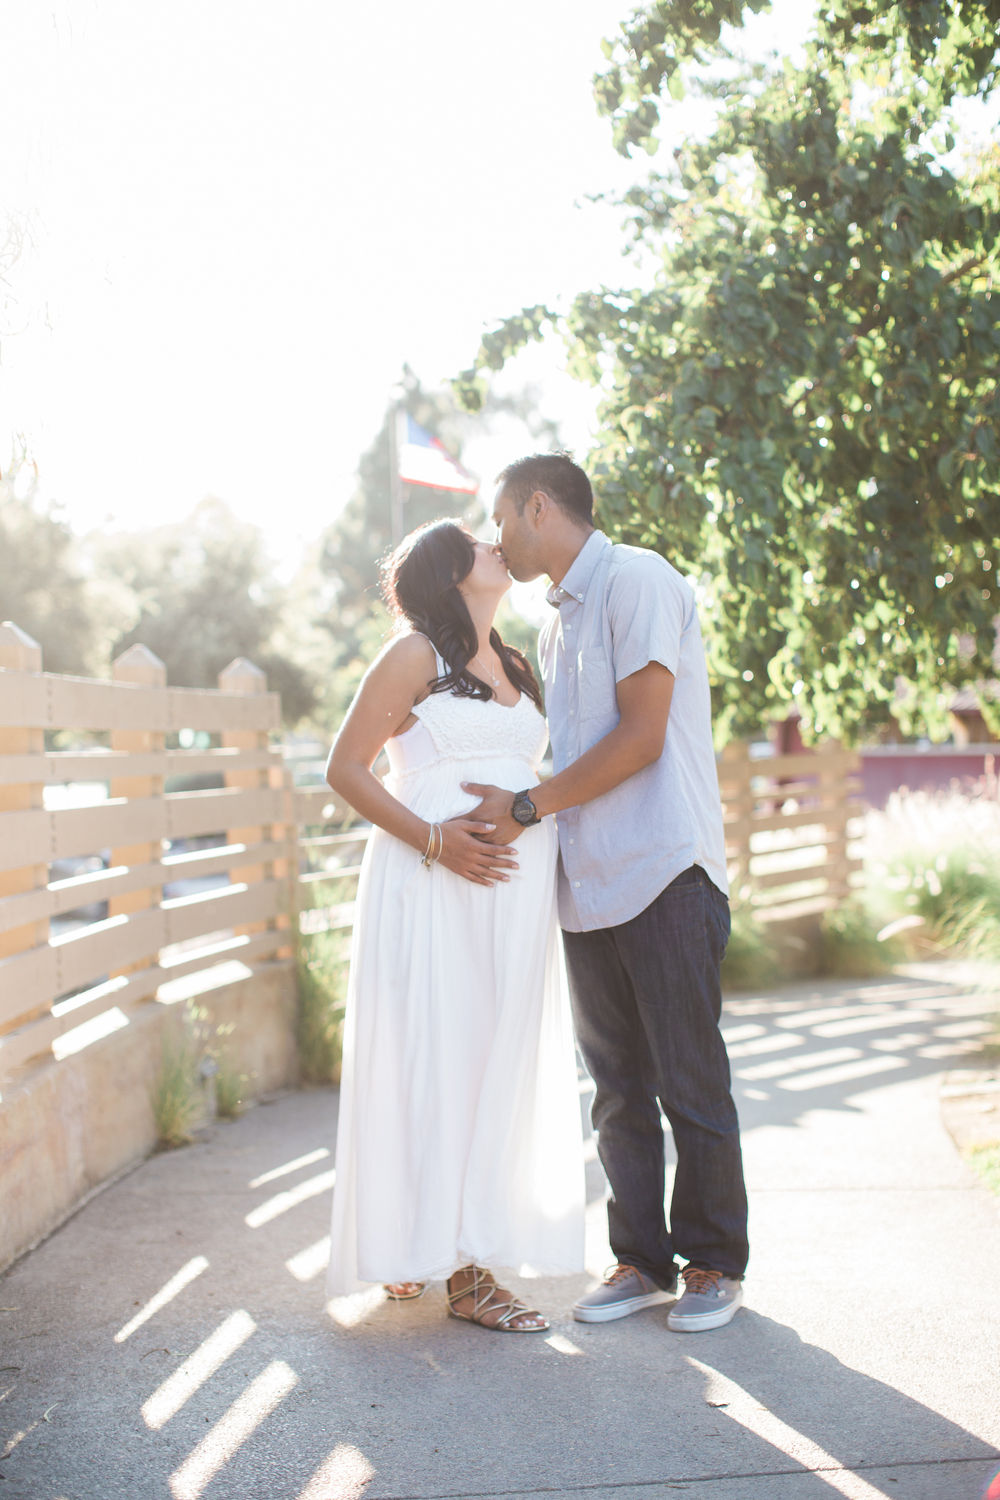 Marcella_Maternity_Cerritos_BrandonJFerlin_Photography-26.jpg